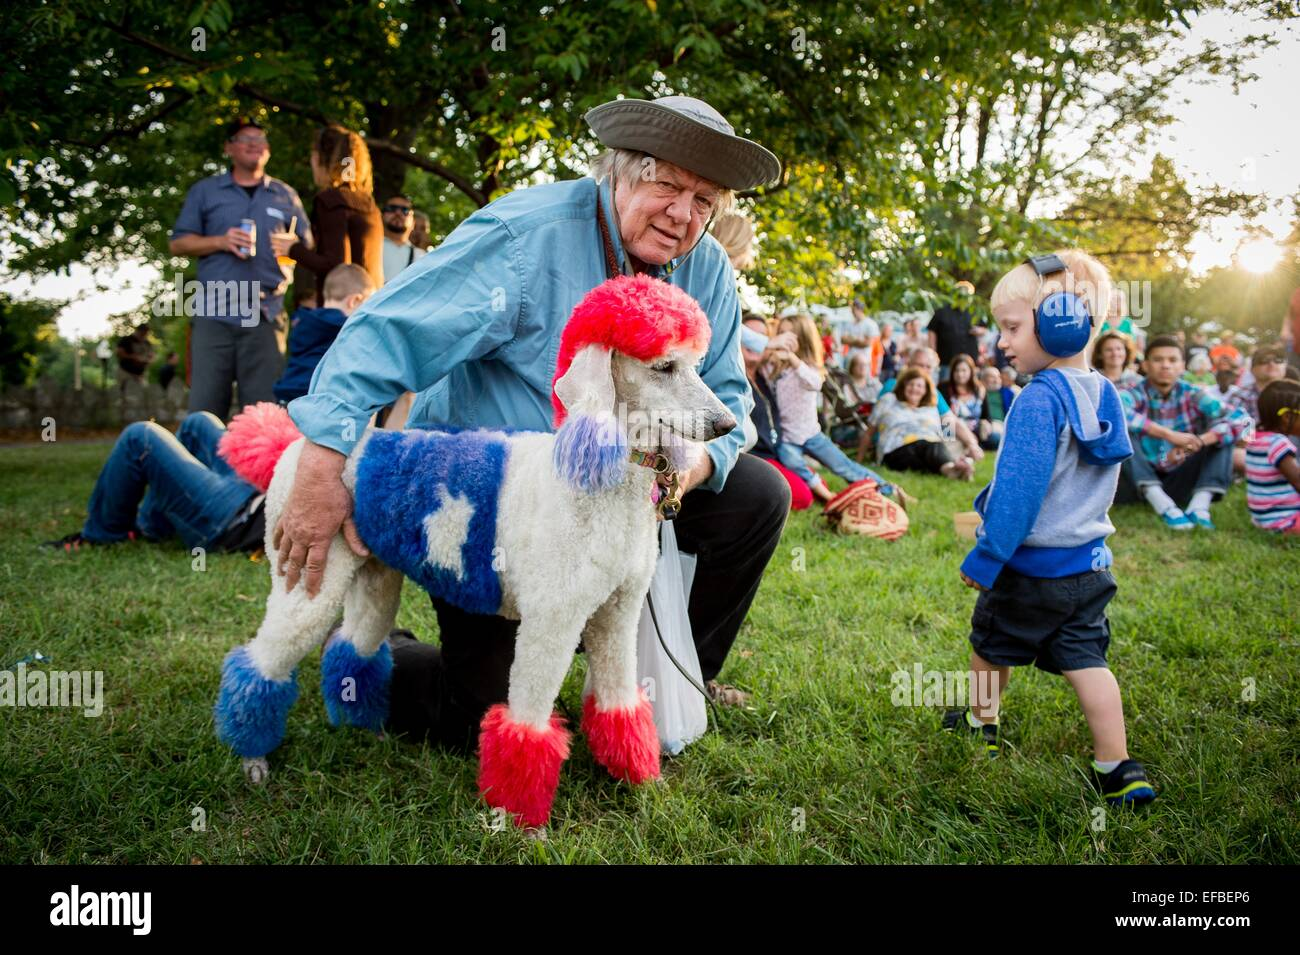 A man shows off his poodle dyed in red, white and blue during the Star Spangled Spectacular event celebrating the - Stock Image